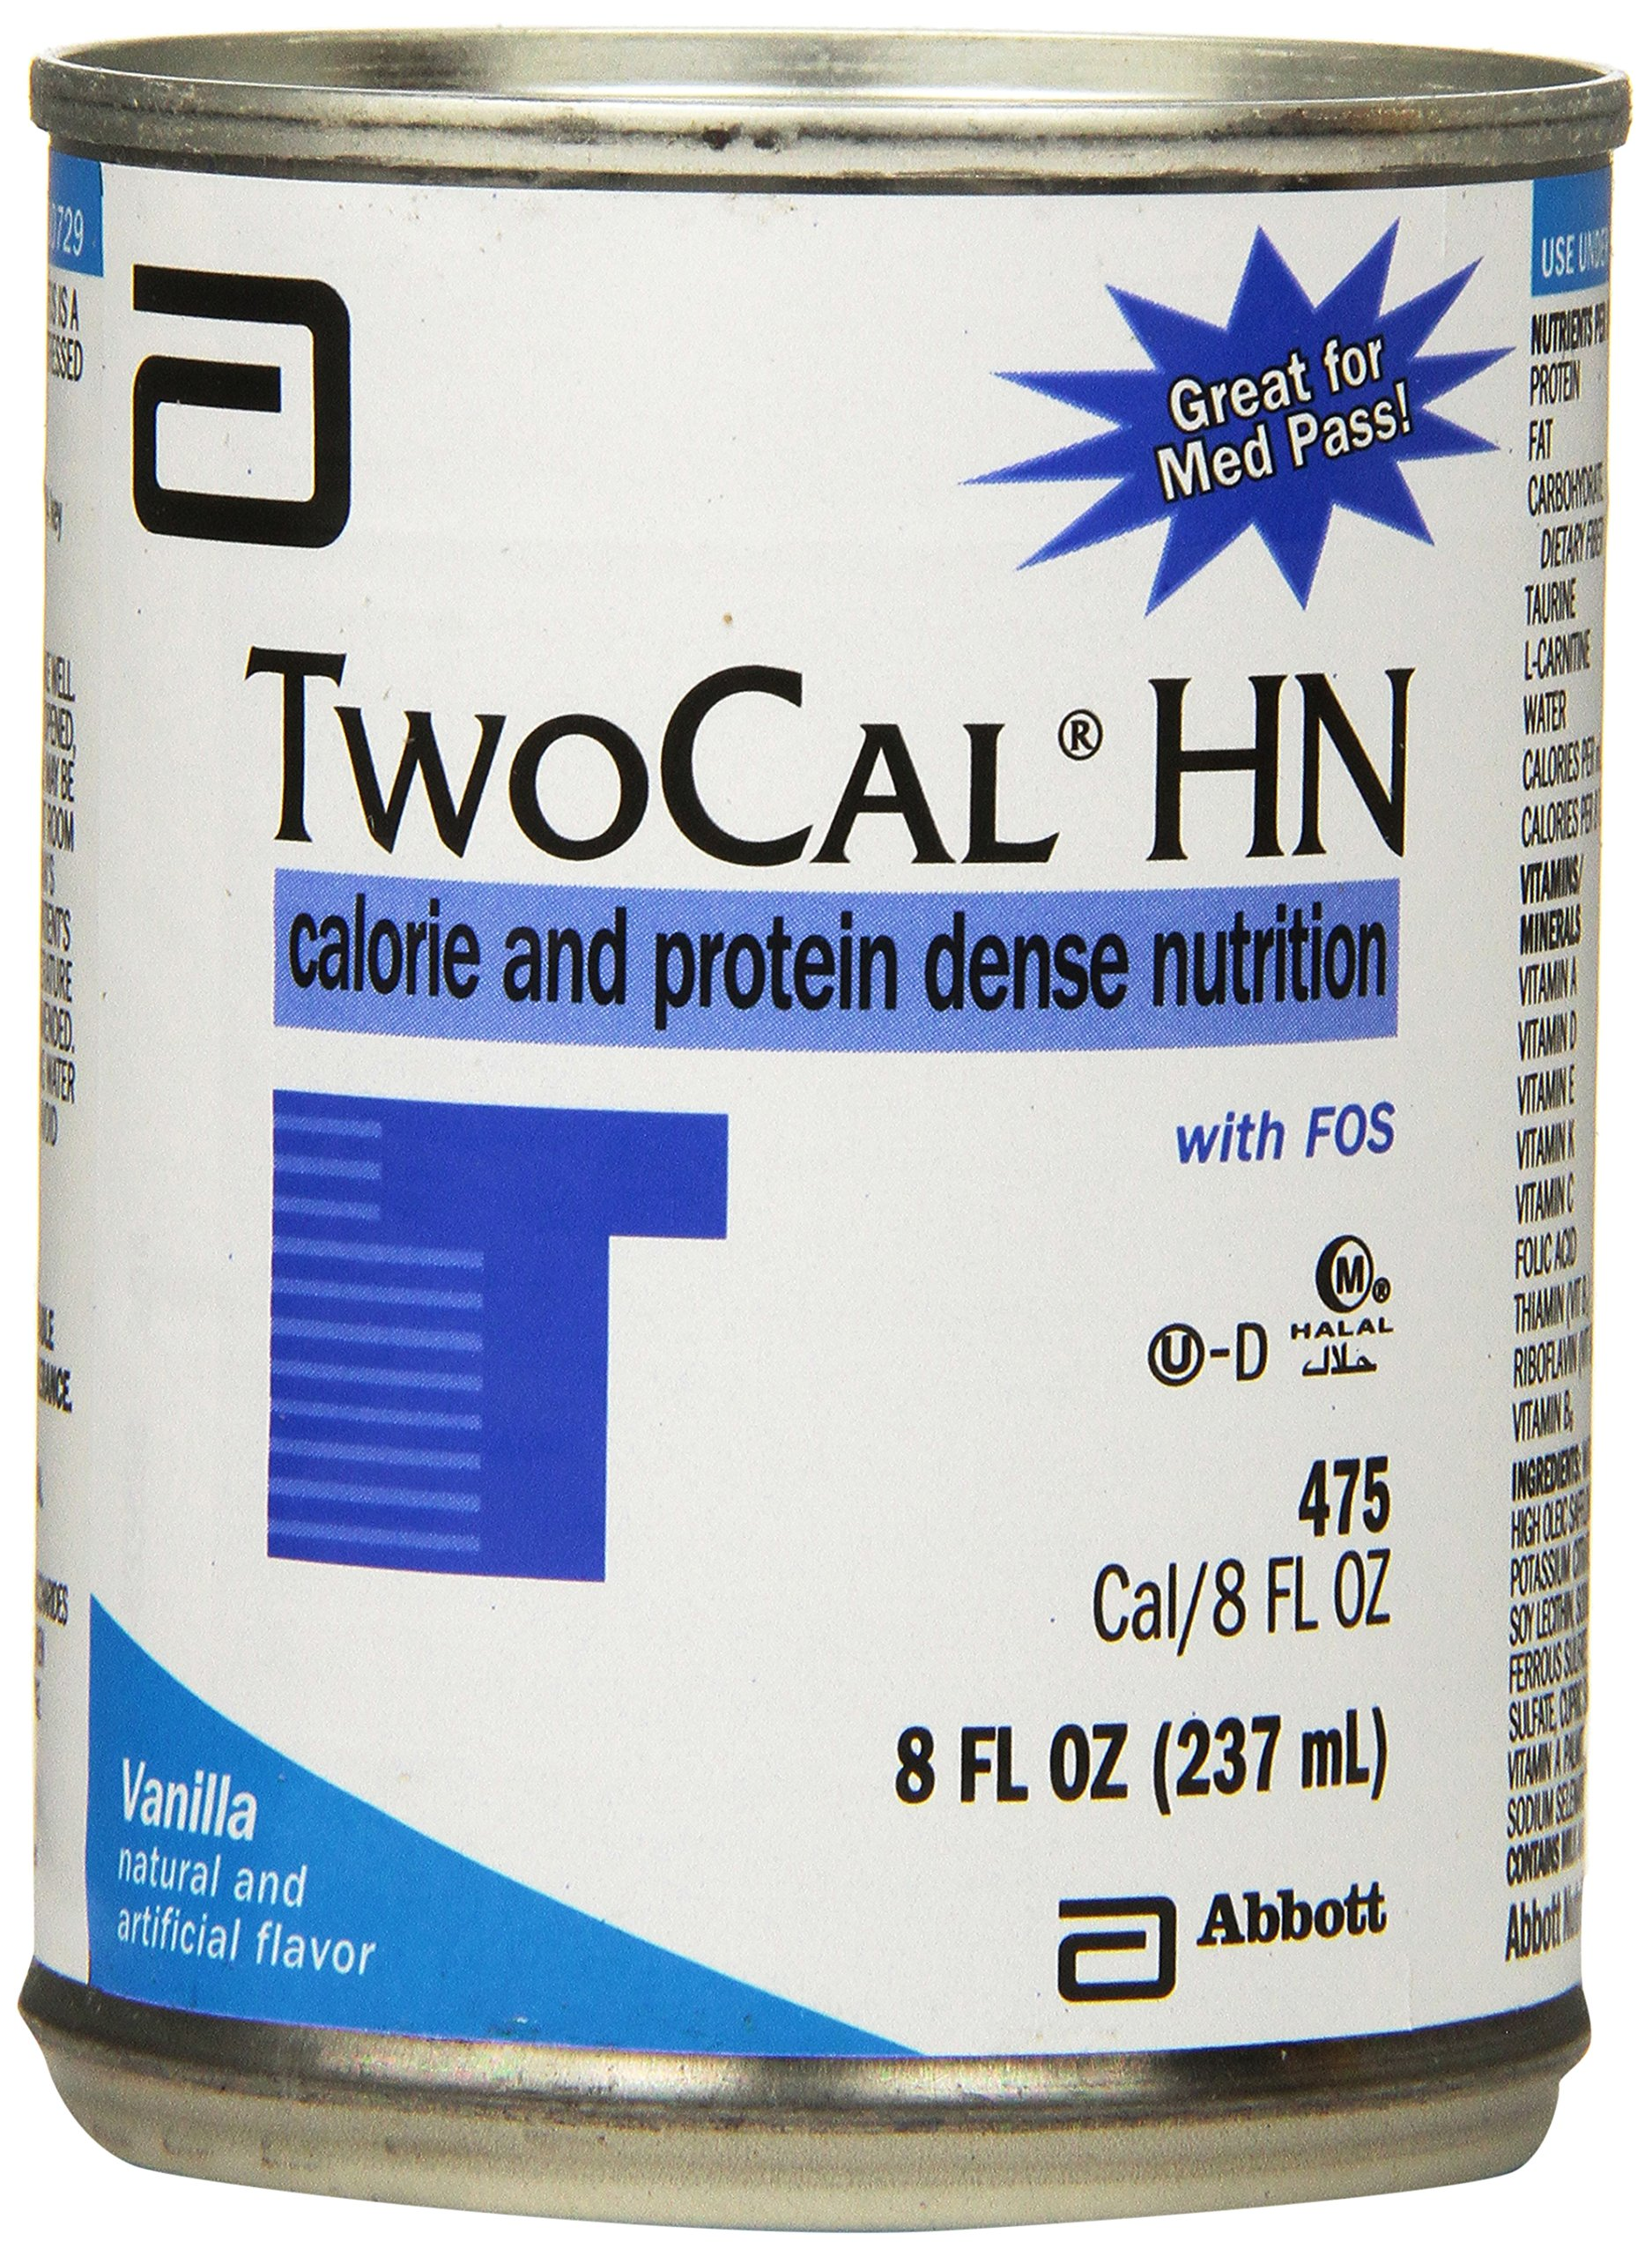 Twocal- HN High Nitrogen Liquid, Vanilla by Ross Nutritional, #00729 - 8 Oz / Can, 24 Cans / Case